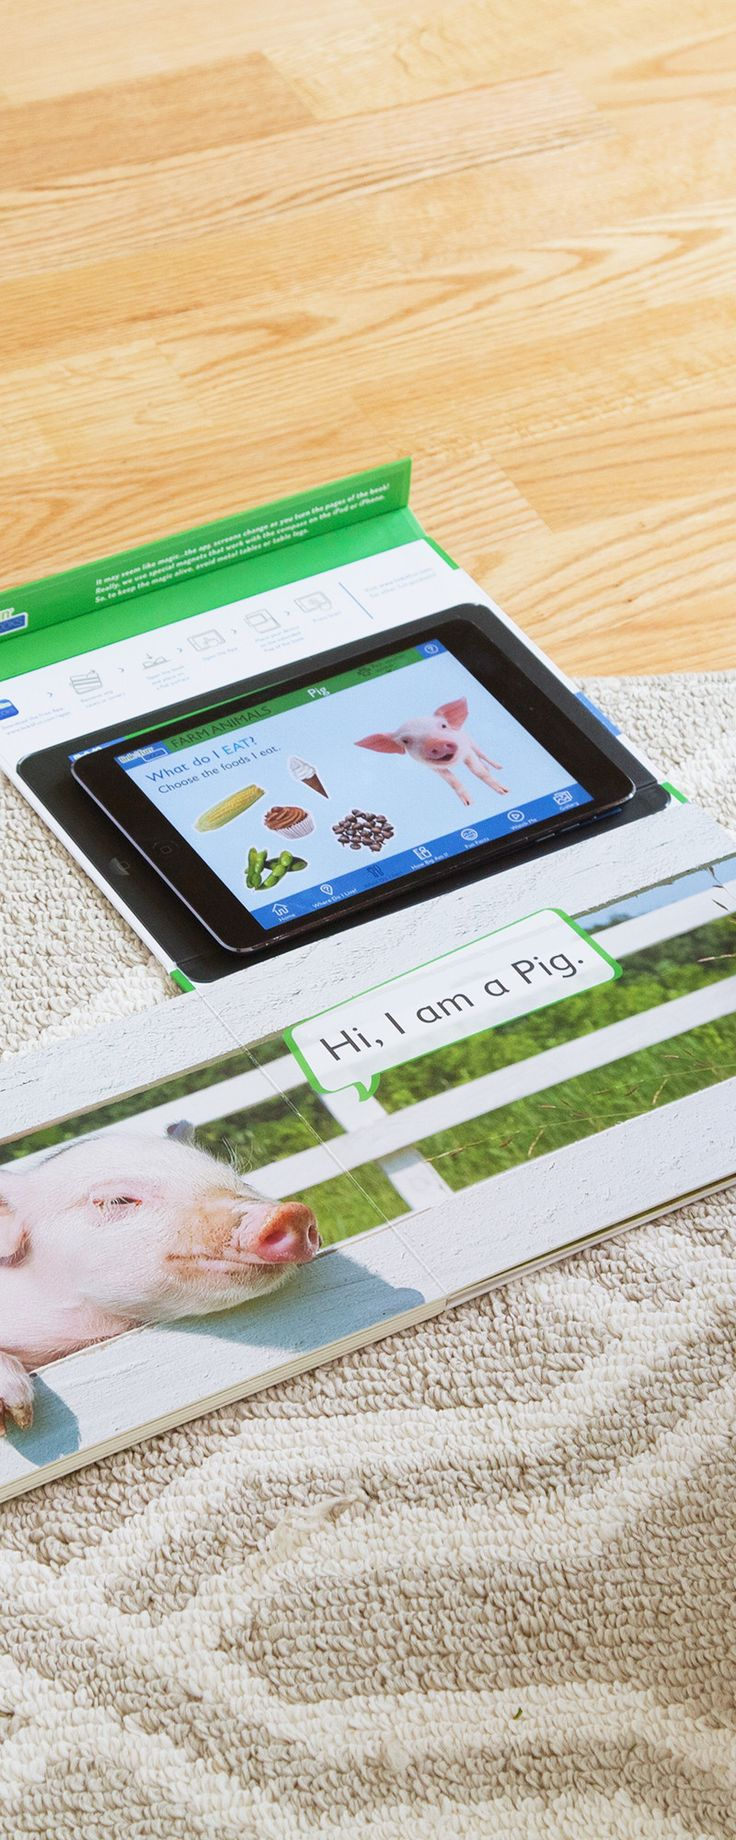 Connected books, blocks, flashcards, and games come to life on the iPad. By combining playtime and screen time, kids learn while having fun.